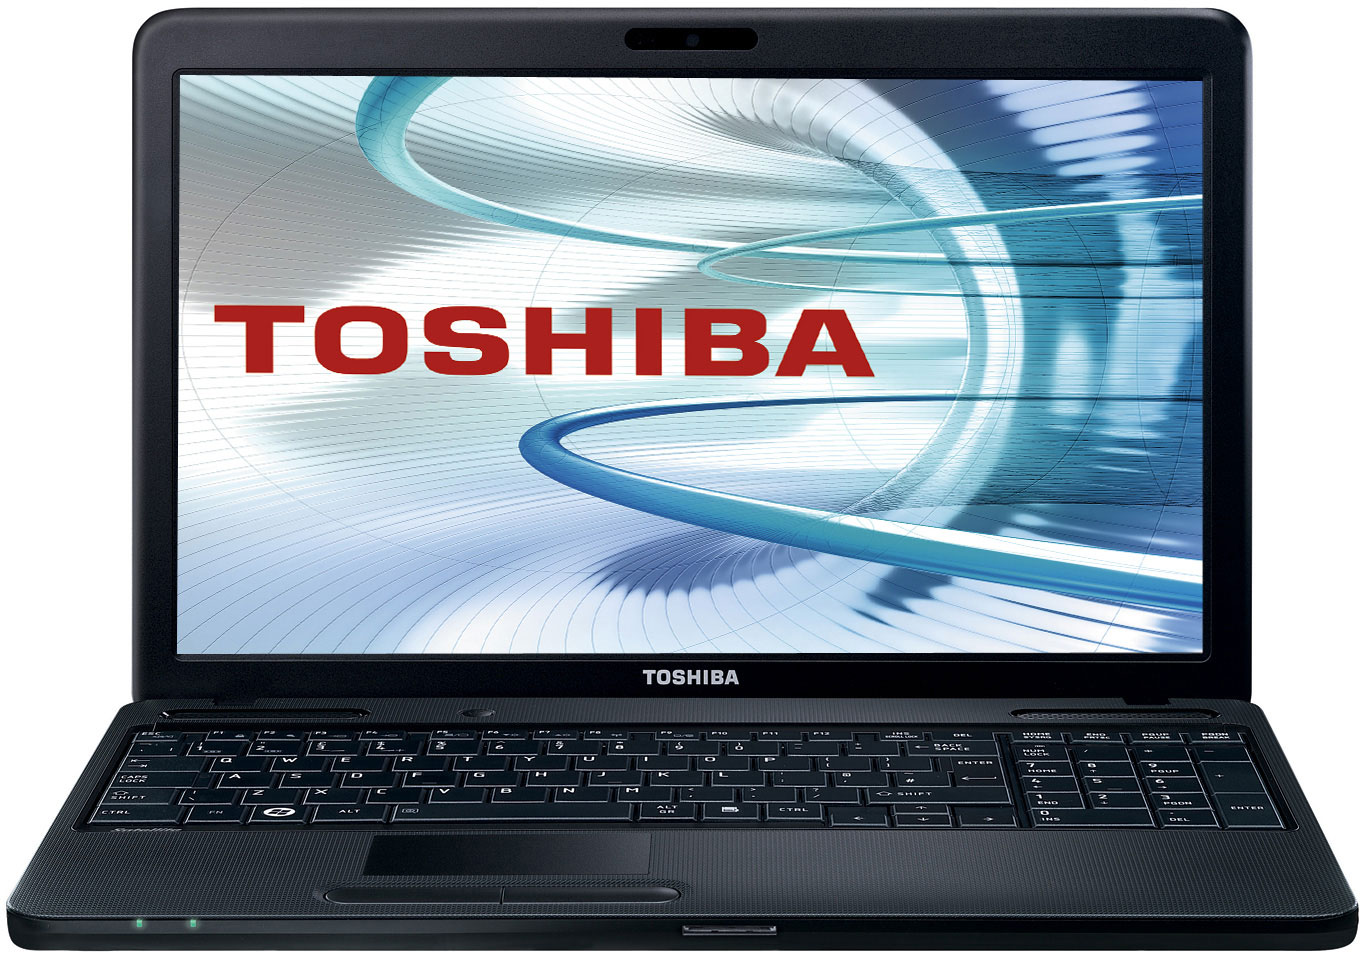 toshiba Mfps & copiers with secure cloud printing & personalized workflow solutions, thermal printers, digital signage and more professional managed print services & more toshiba drivers, manuals & more how can toshiba american business solutions help your business in the art of business.